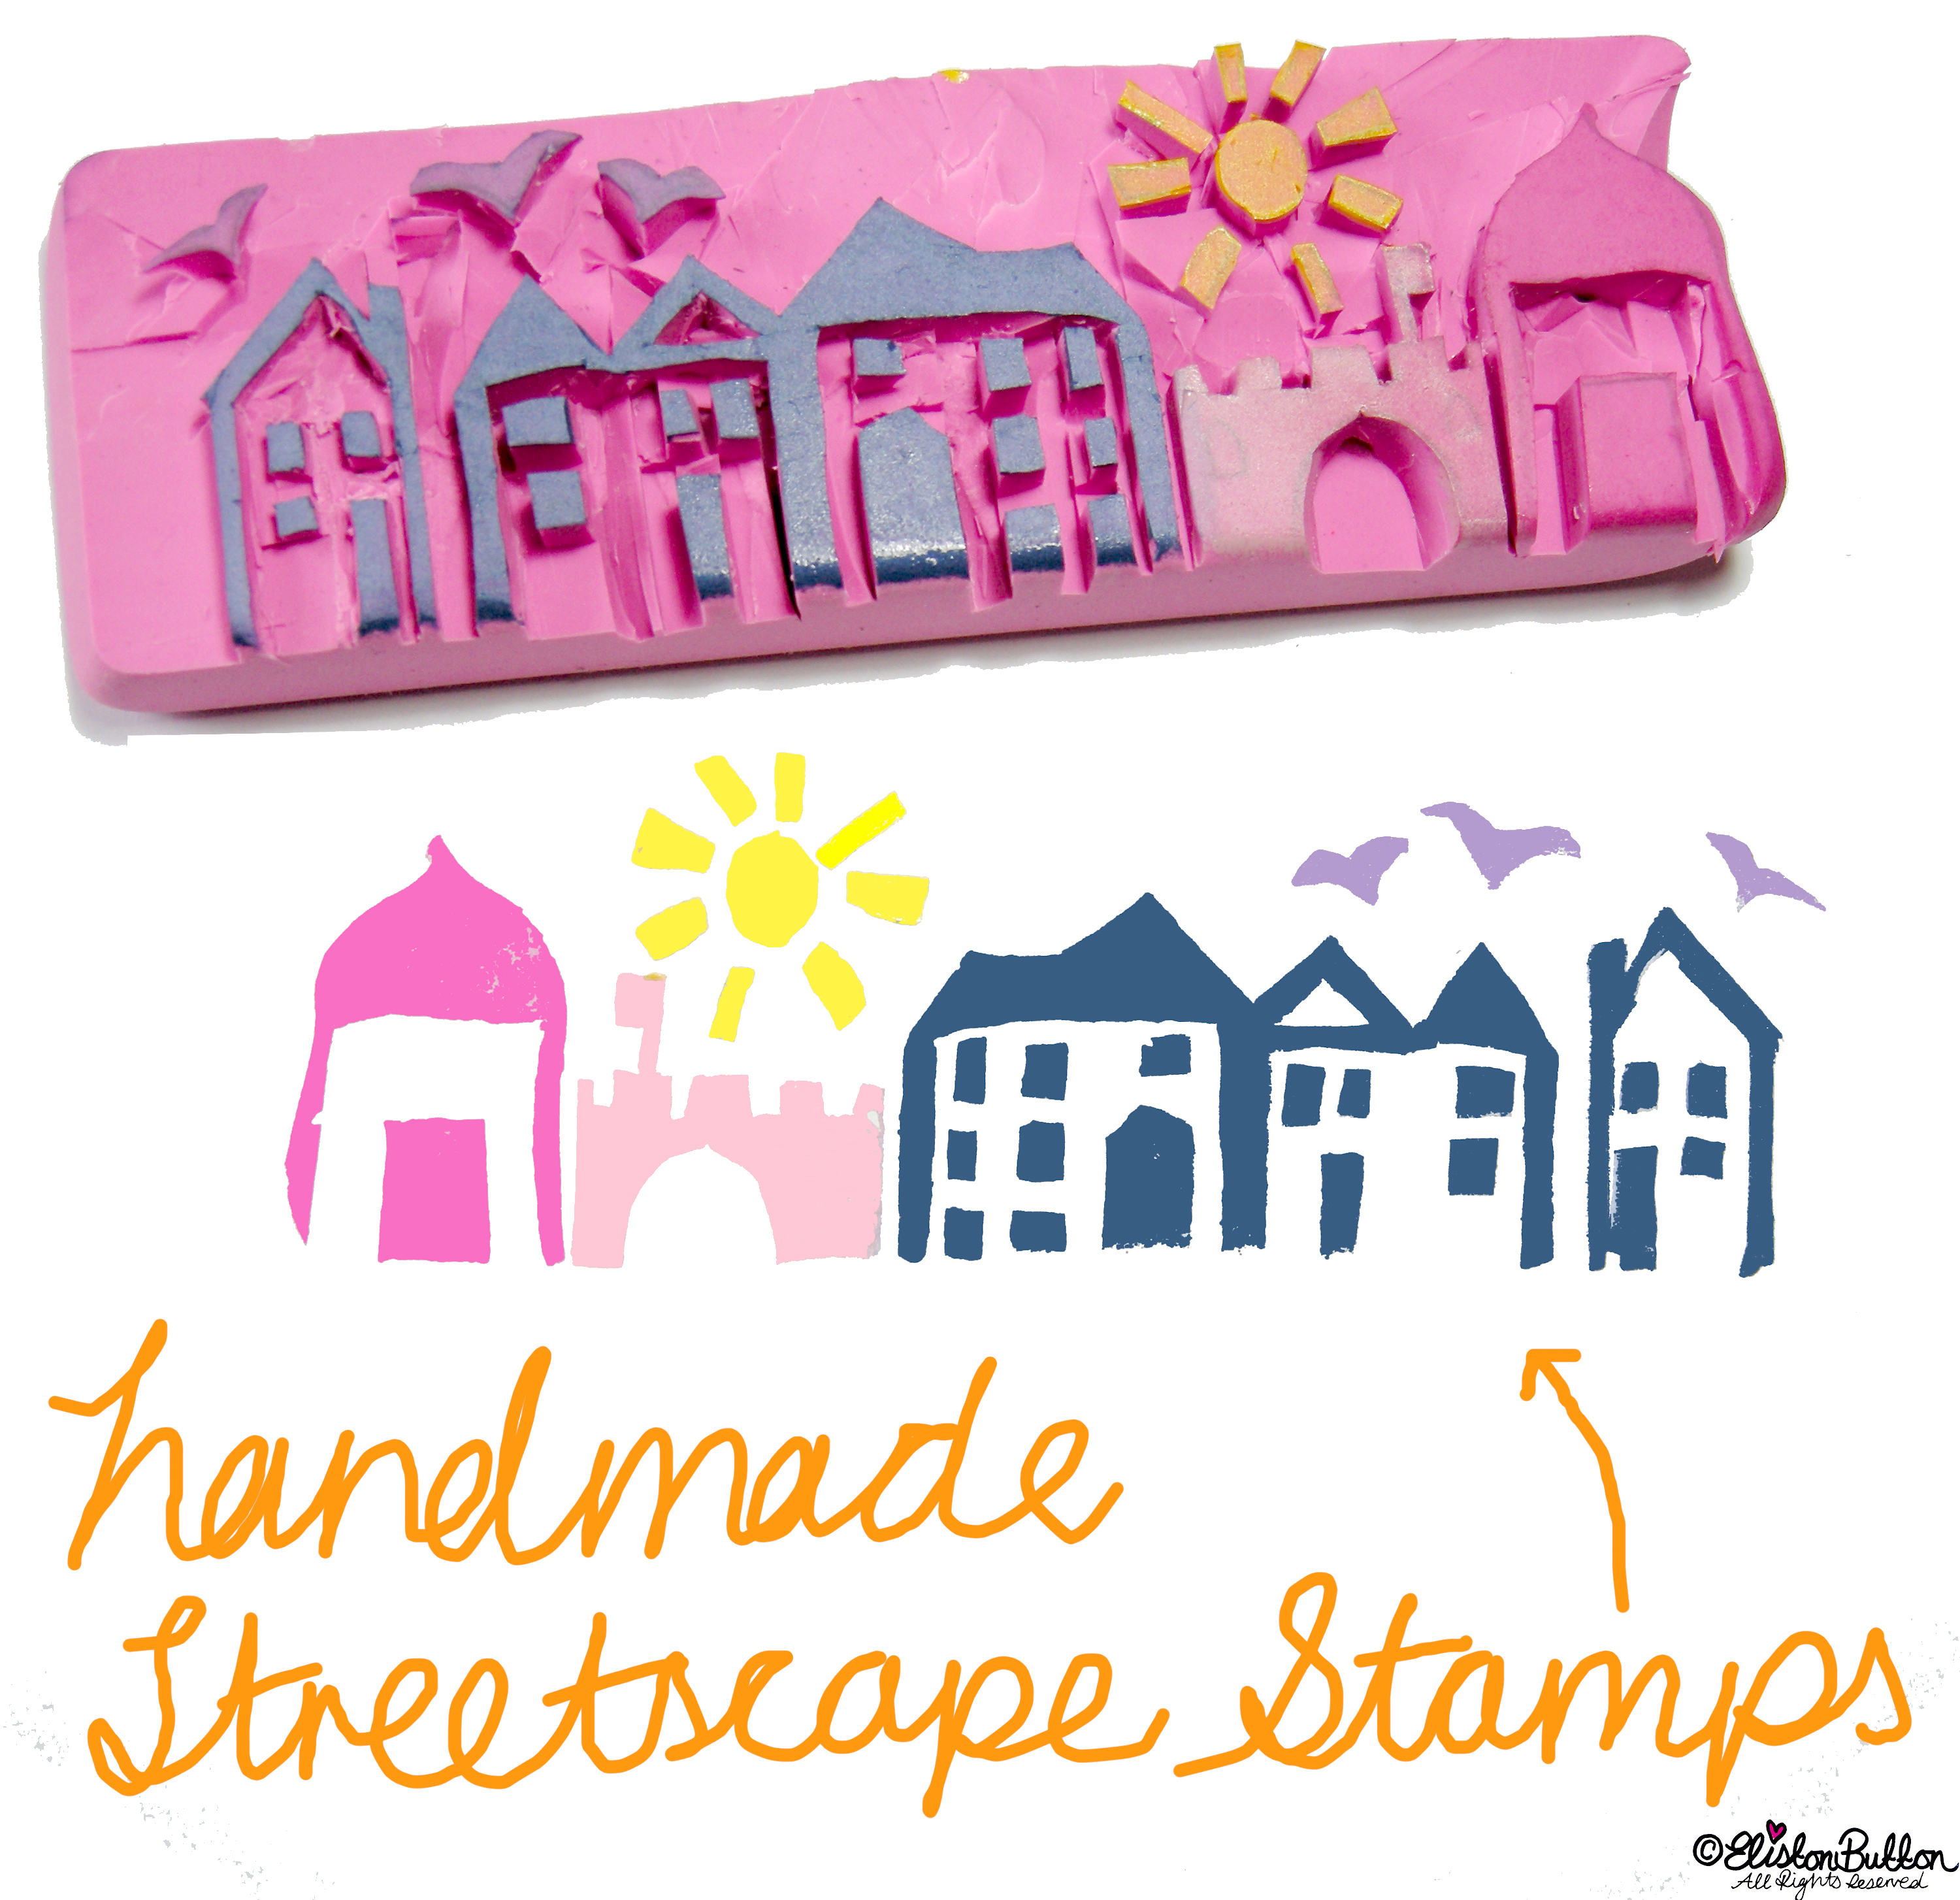 Hand Carved Streetscape Stamps - Hand-Carved Streetscape Stamps at www.elistonbutton.com - Eliston Button - That Crafty Kid – Art, Design, Craft & Adventure.